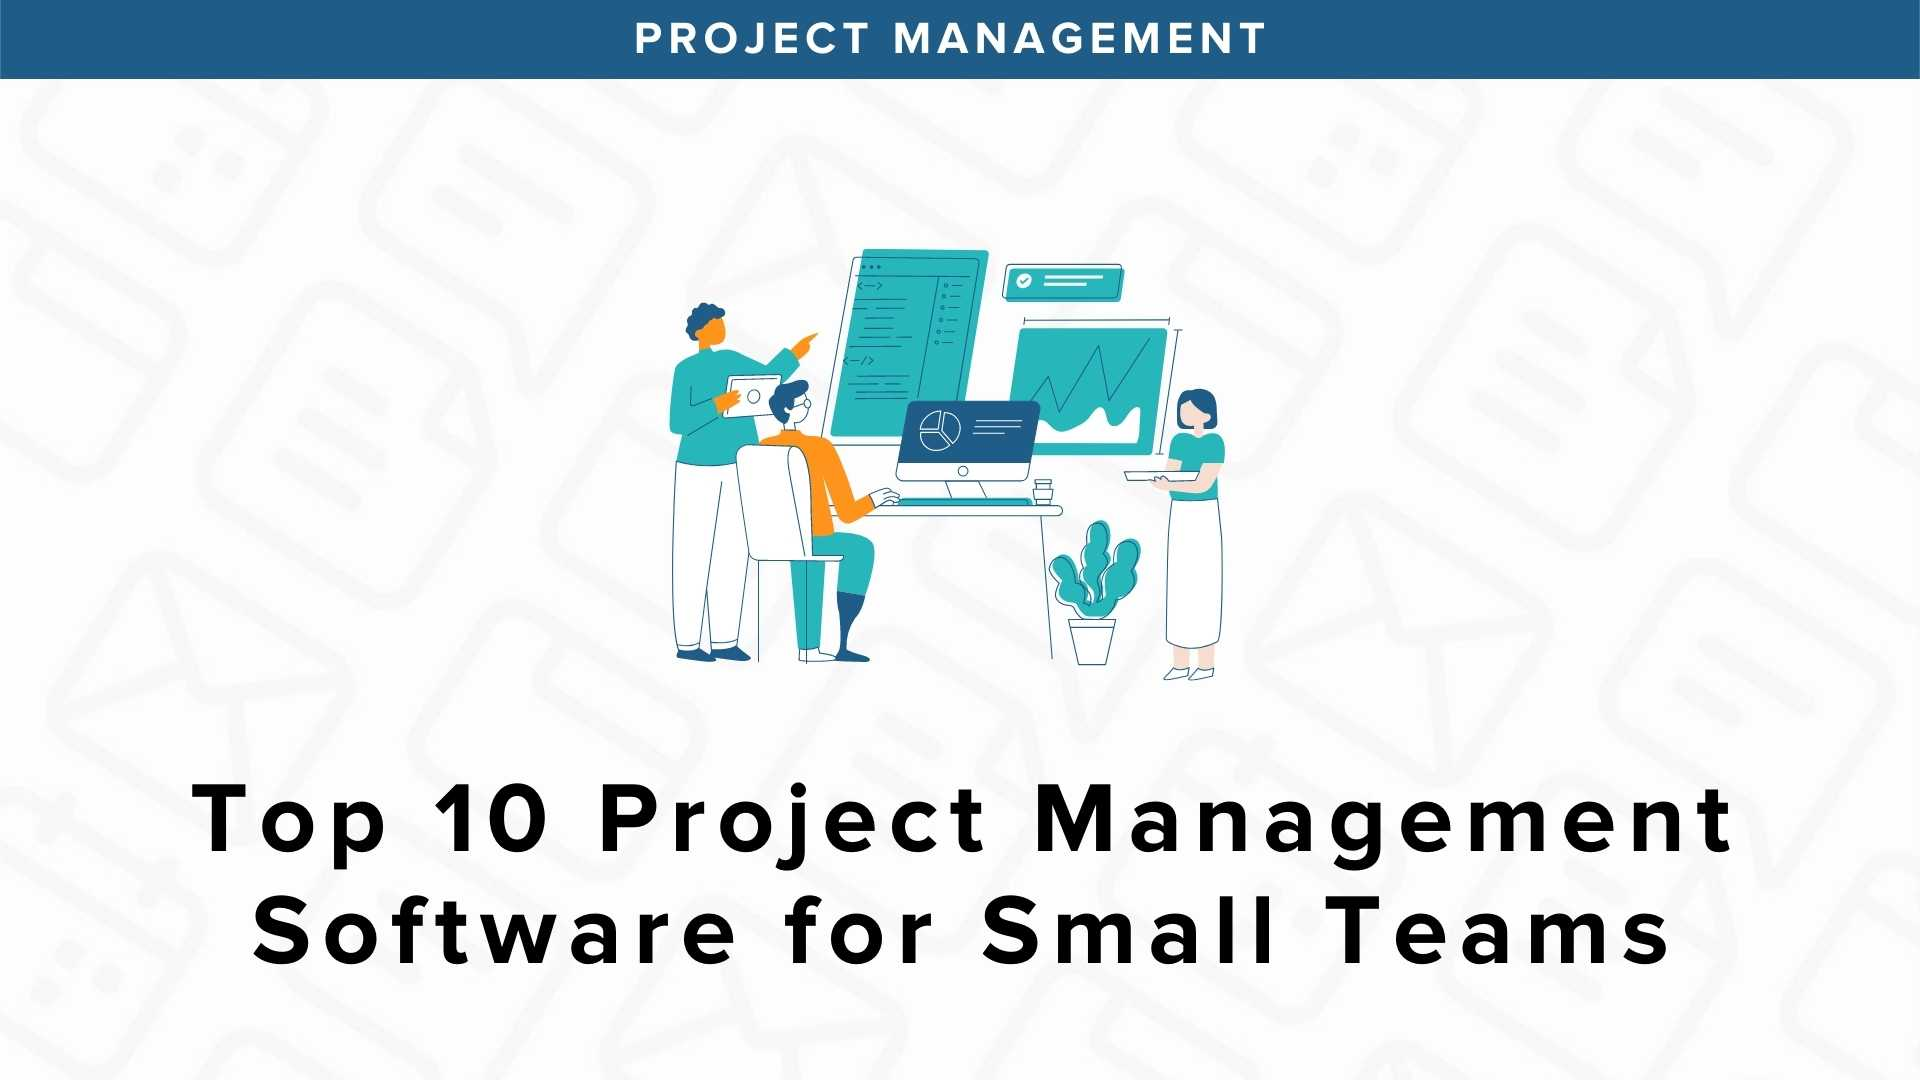 10 Best Project Management Software Tools for Small Teams